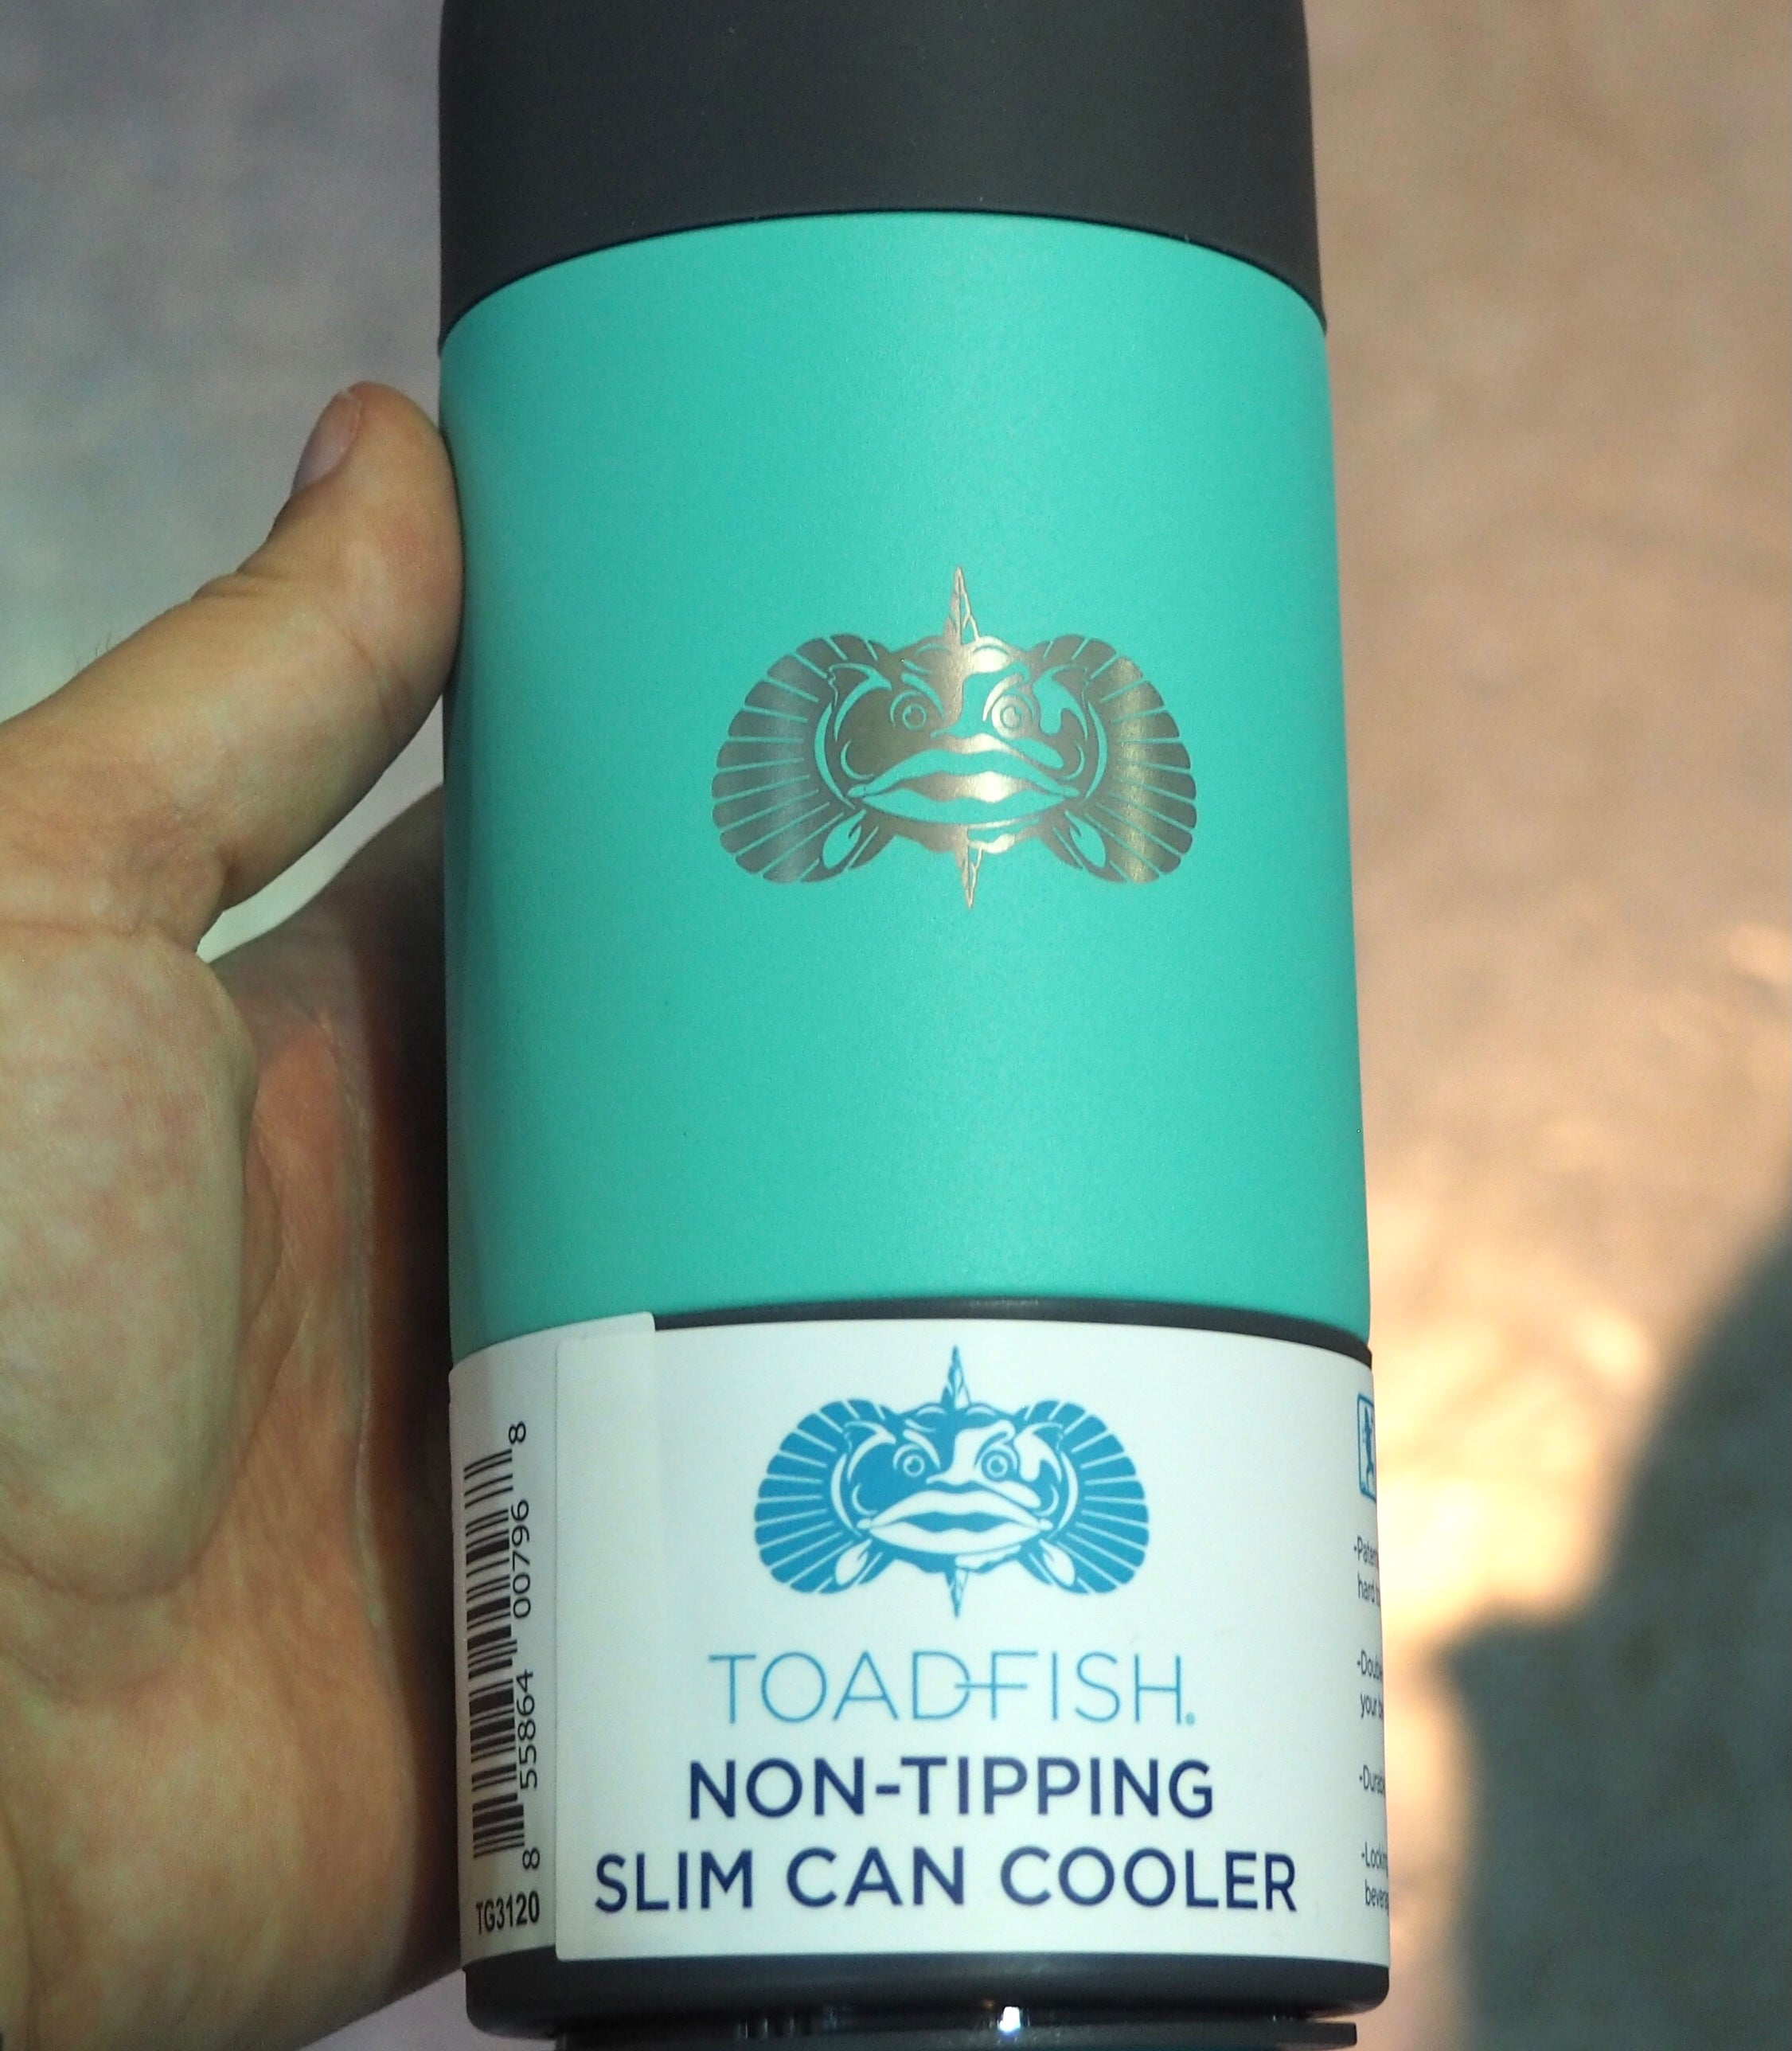 Toadfish Non-Tipping Slim Can Cooler